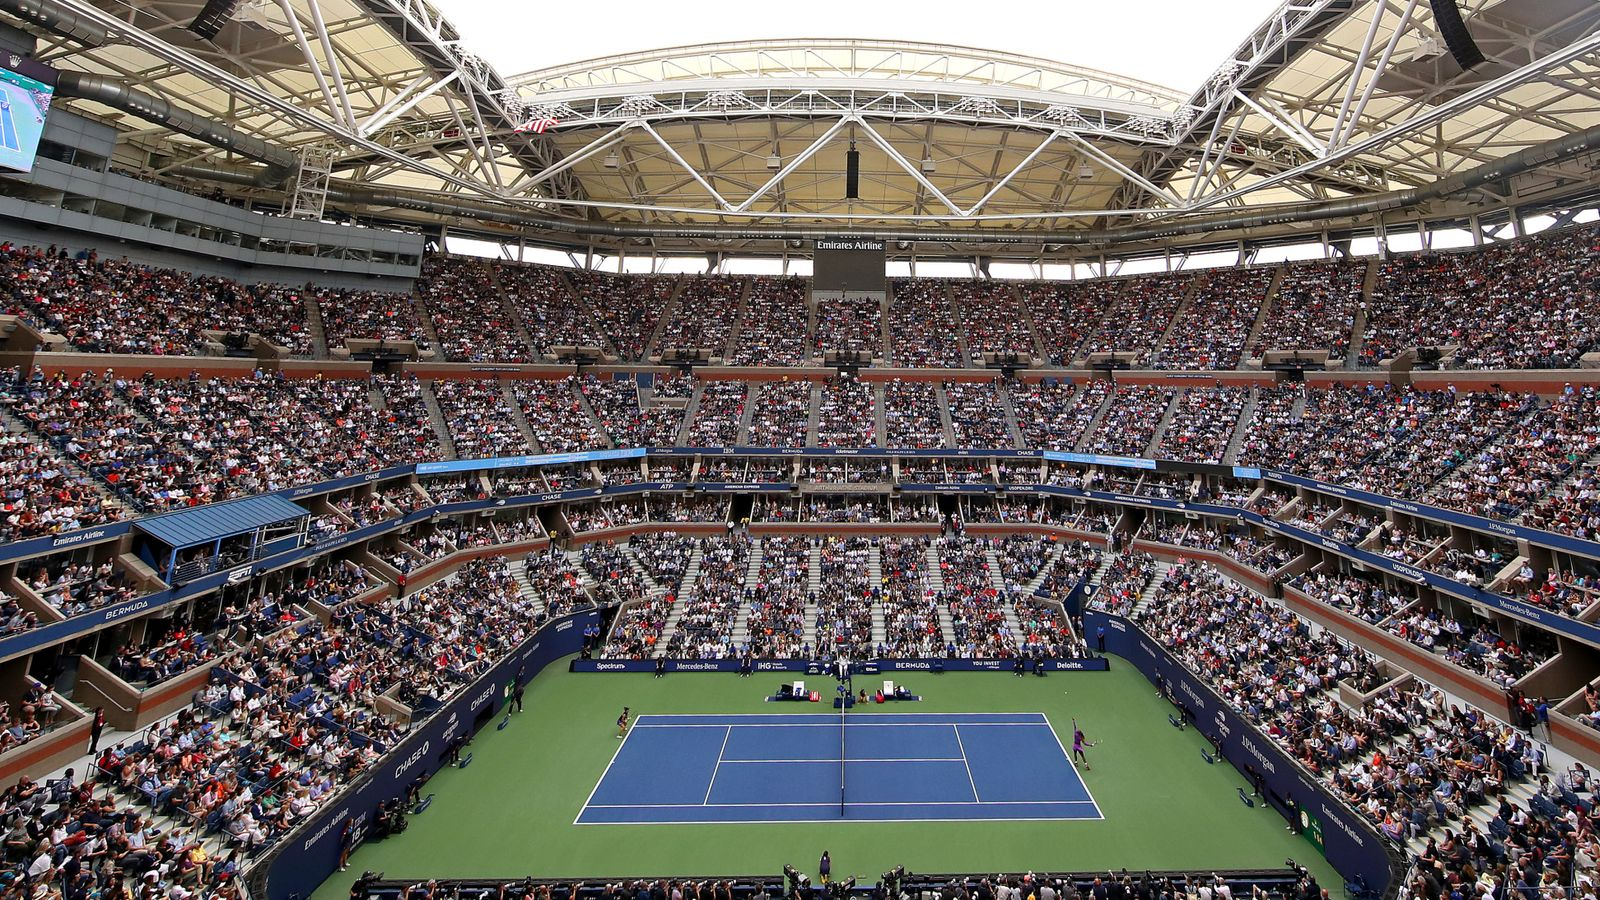 Decision on U.S. Open tennis in June